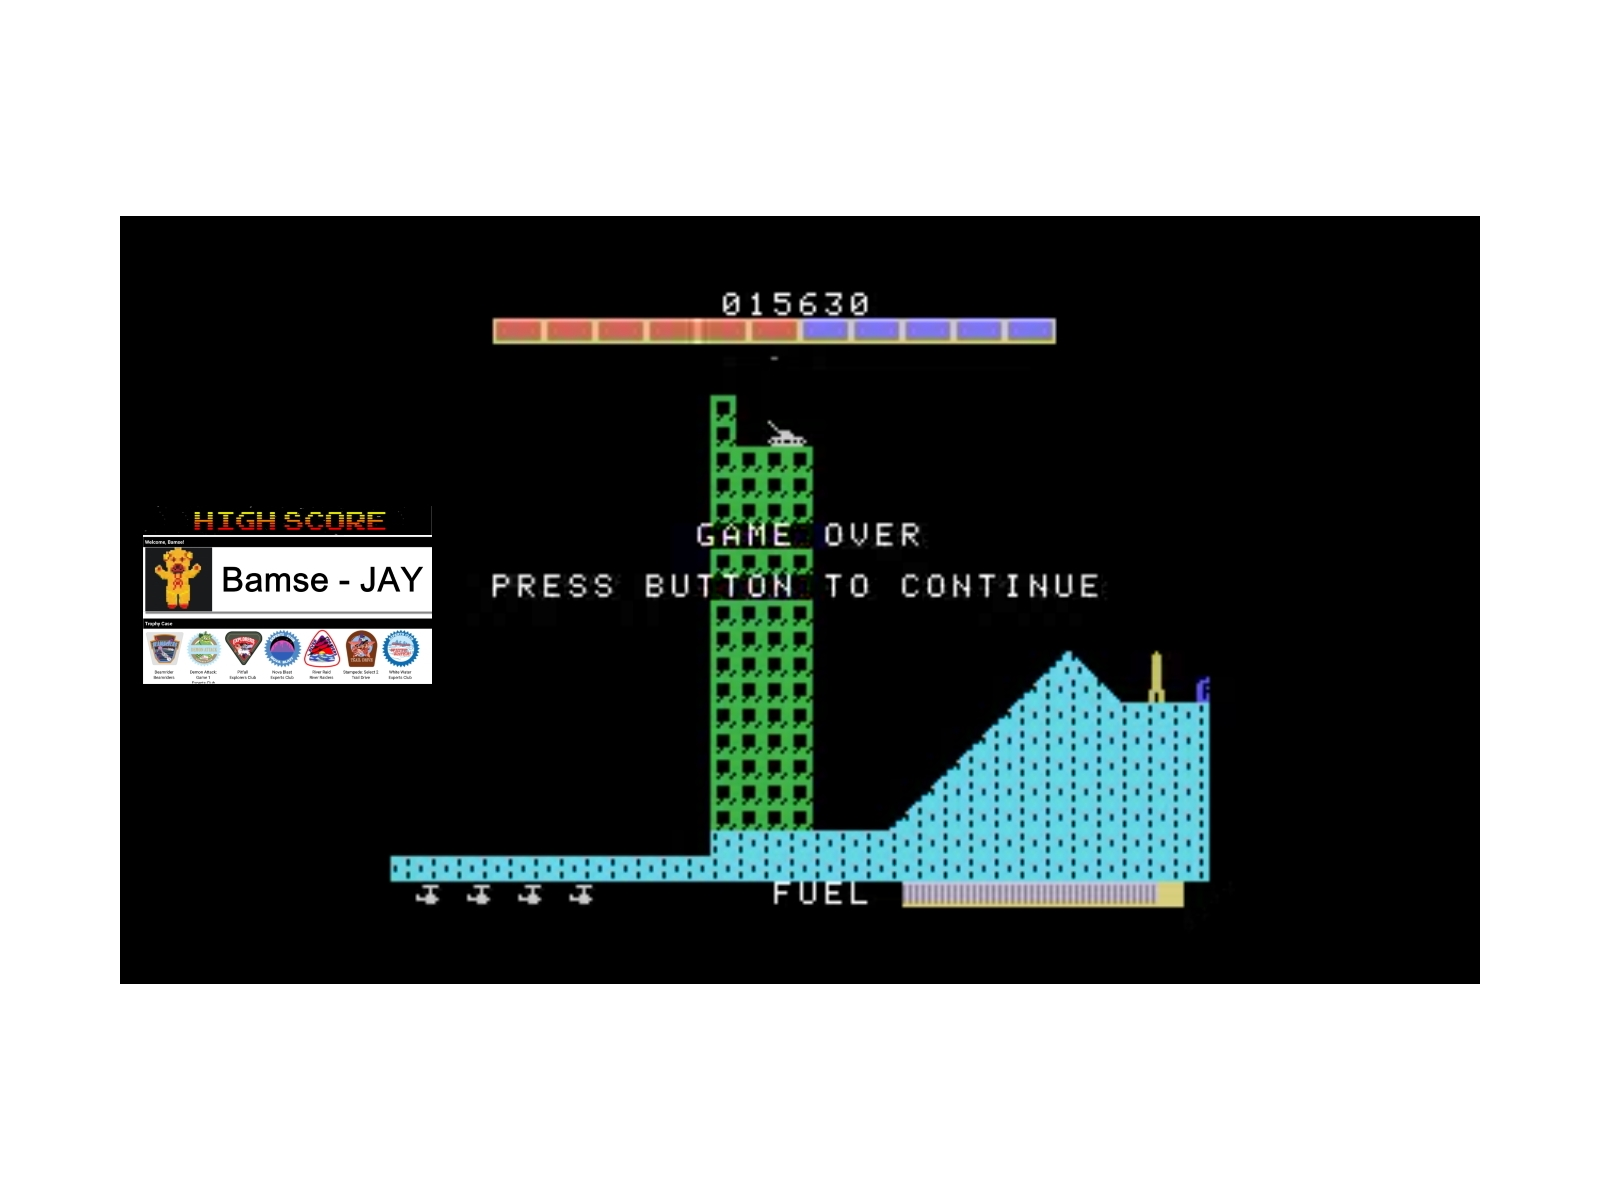 Bamse: Super Cobra (Colecovision Emulated) 15,630 points on 2019-12-12 15:18:06